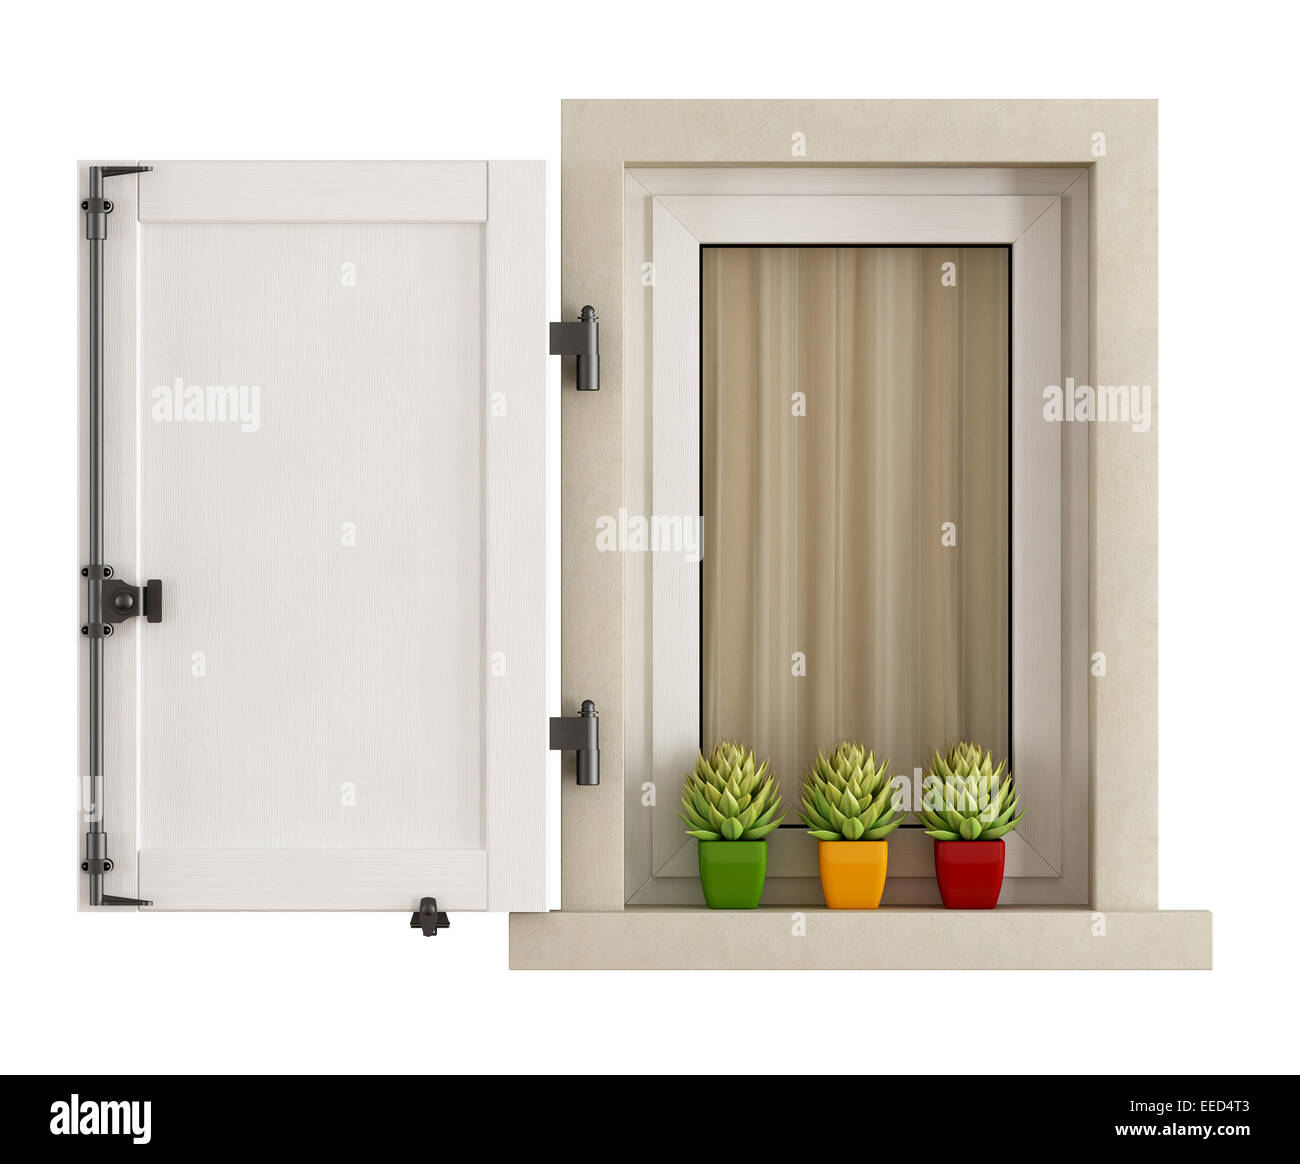 White window with open shutter and small cactus plants on the windowsill, isolated - 3D Rendering Stock Photo